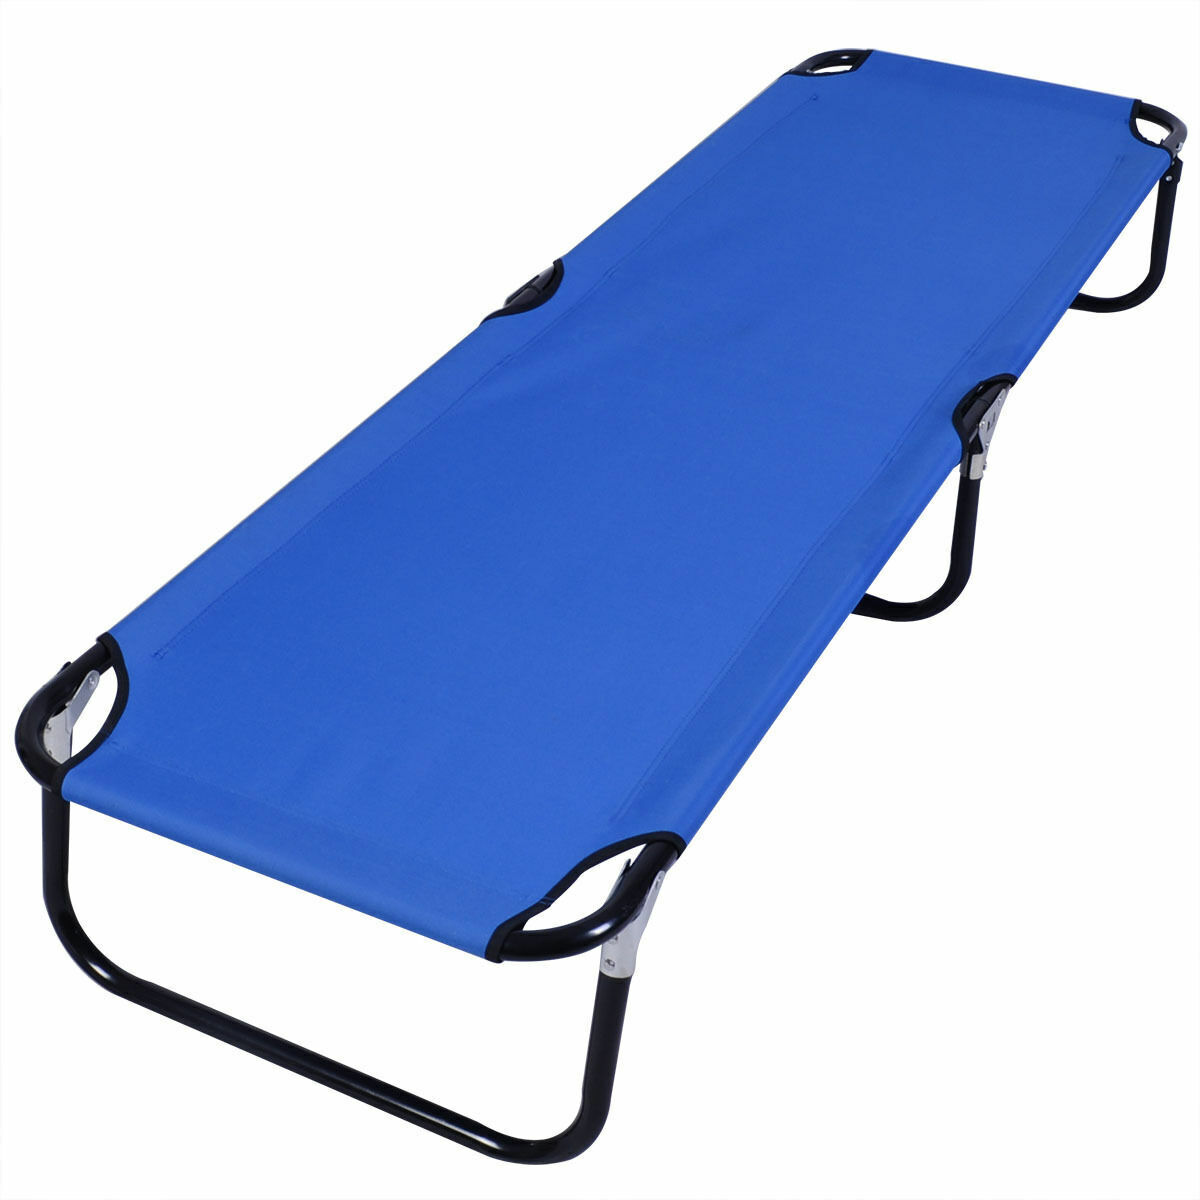 Blue Folding Camping Bed Outdoor Portable Military Cot Sleep